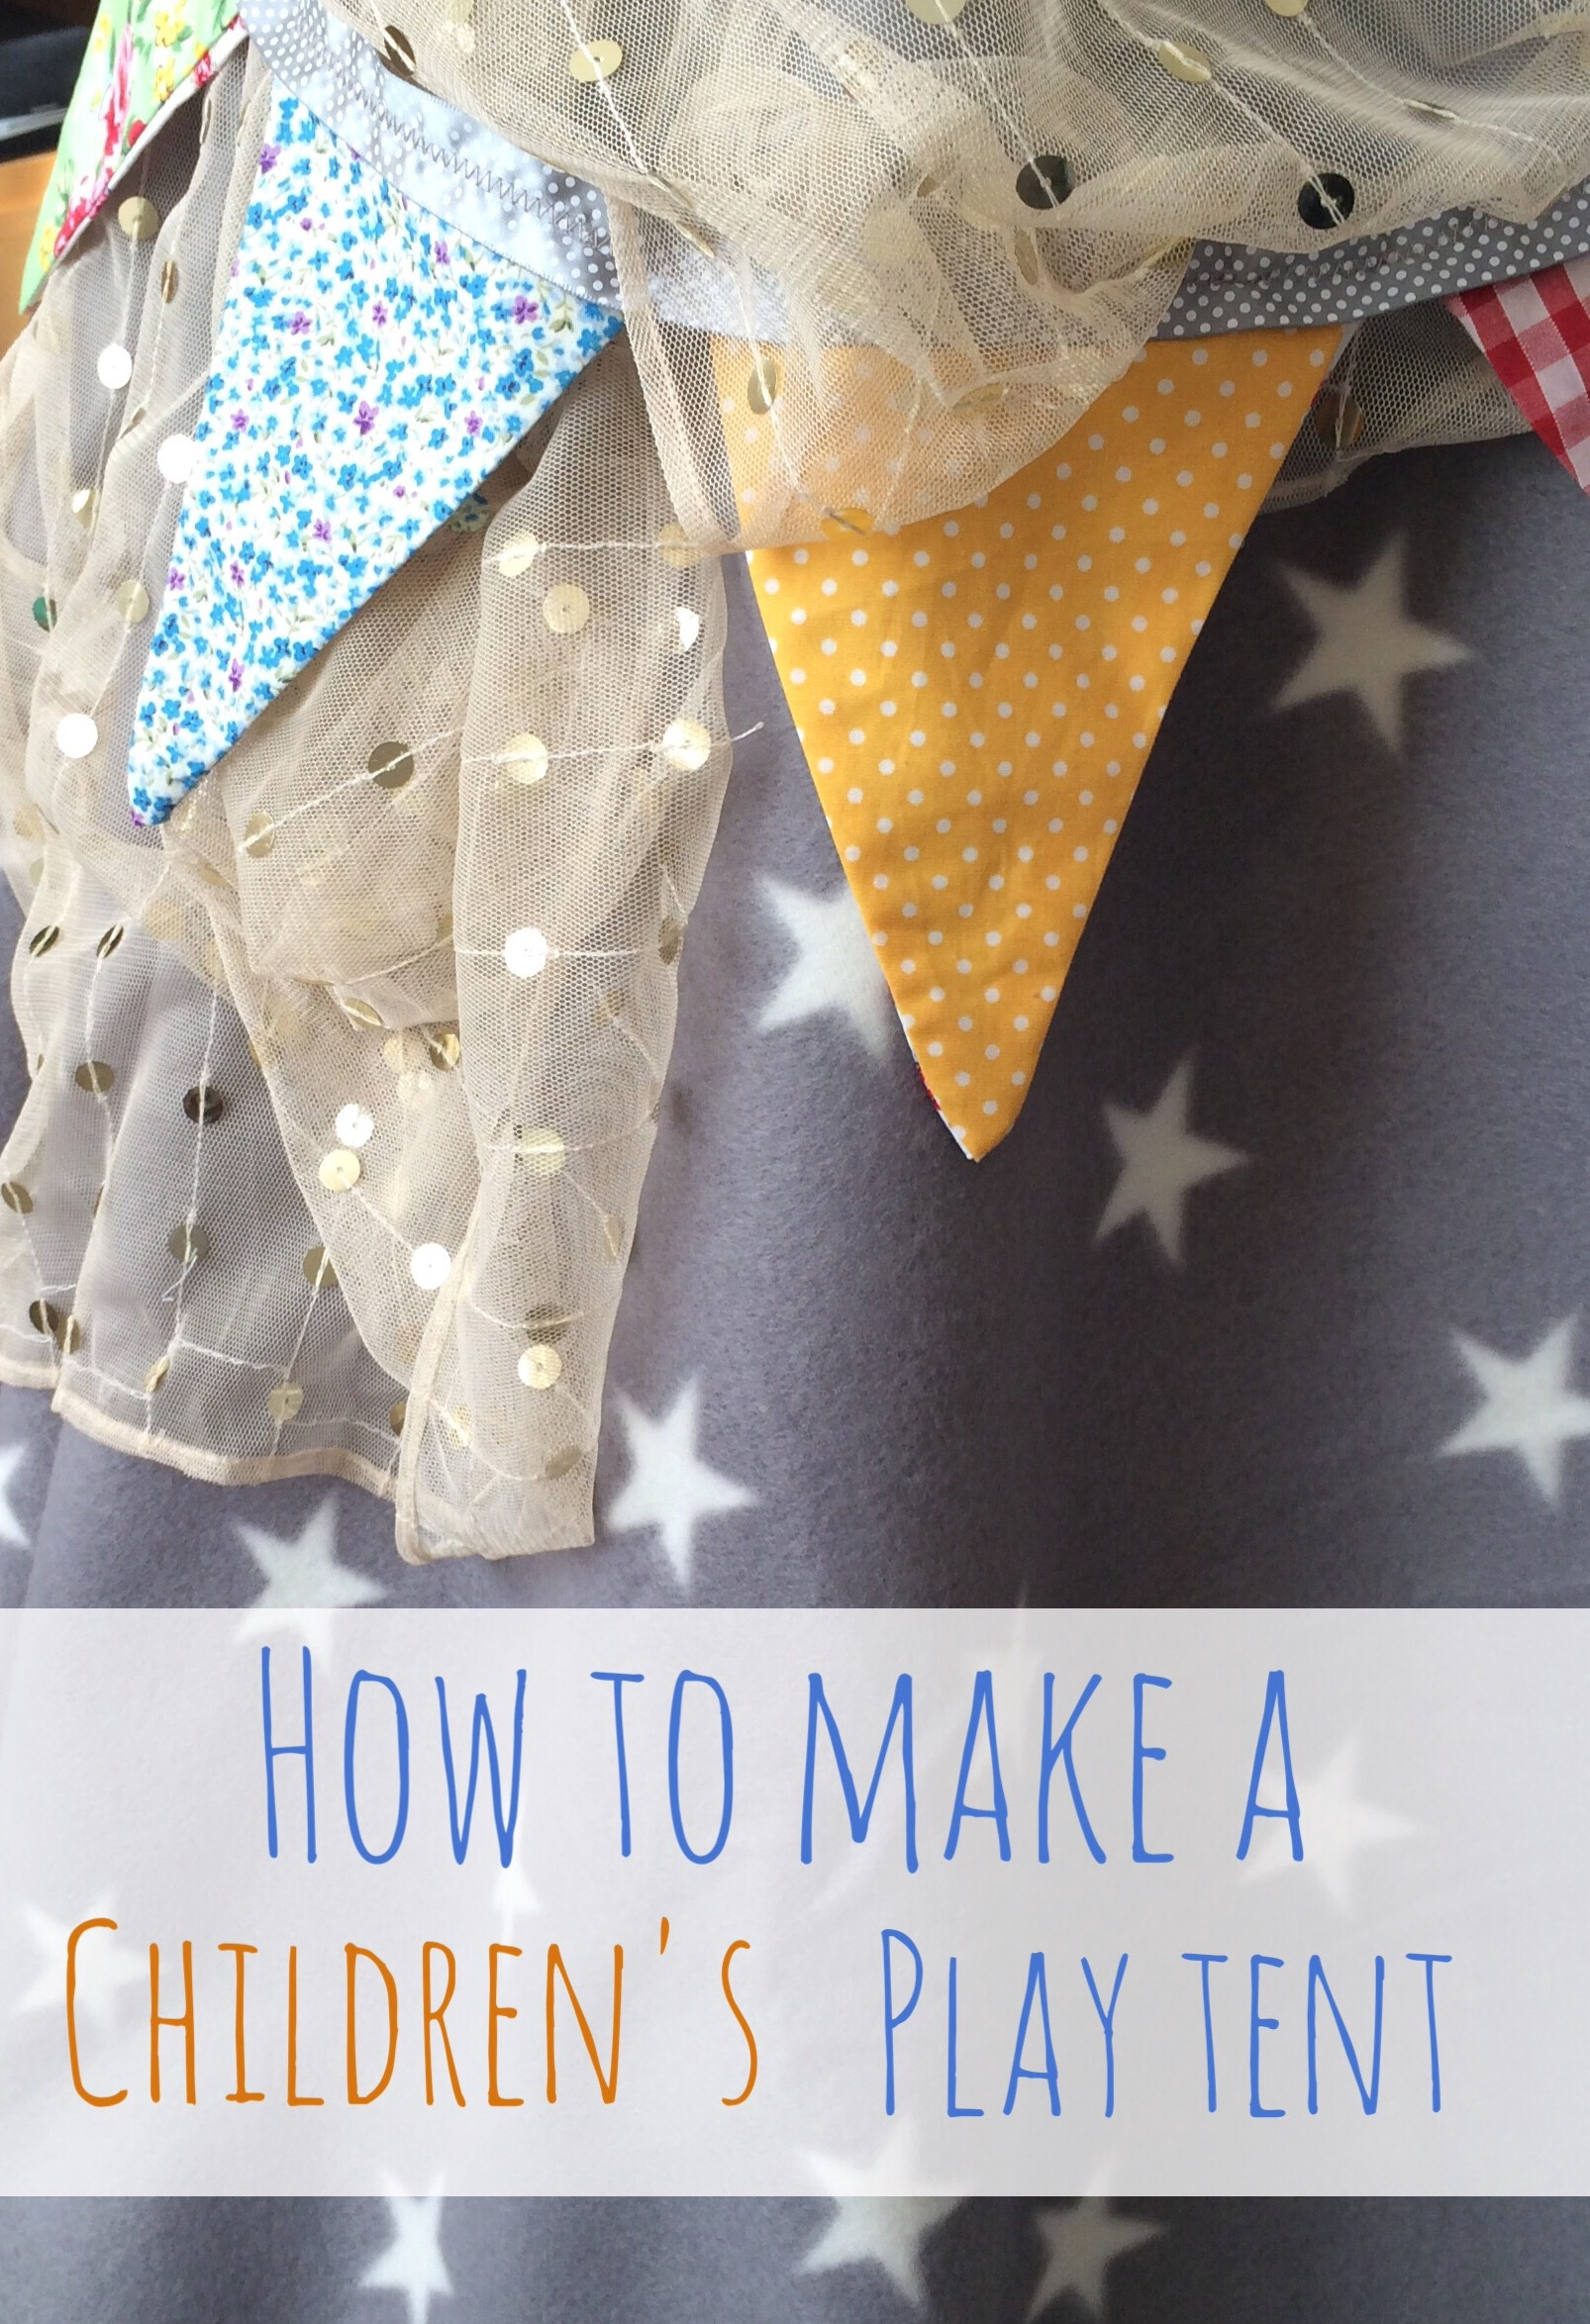 How to make a children's play tent and tepee